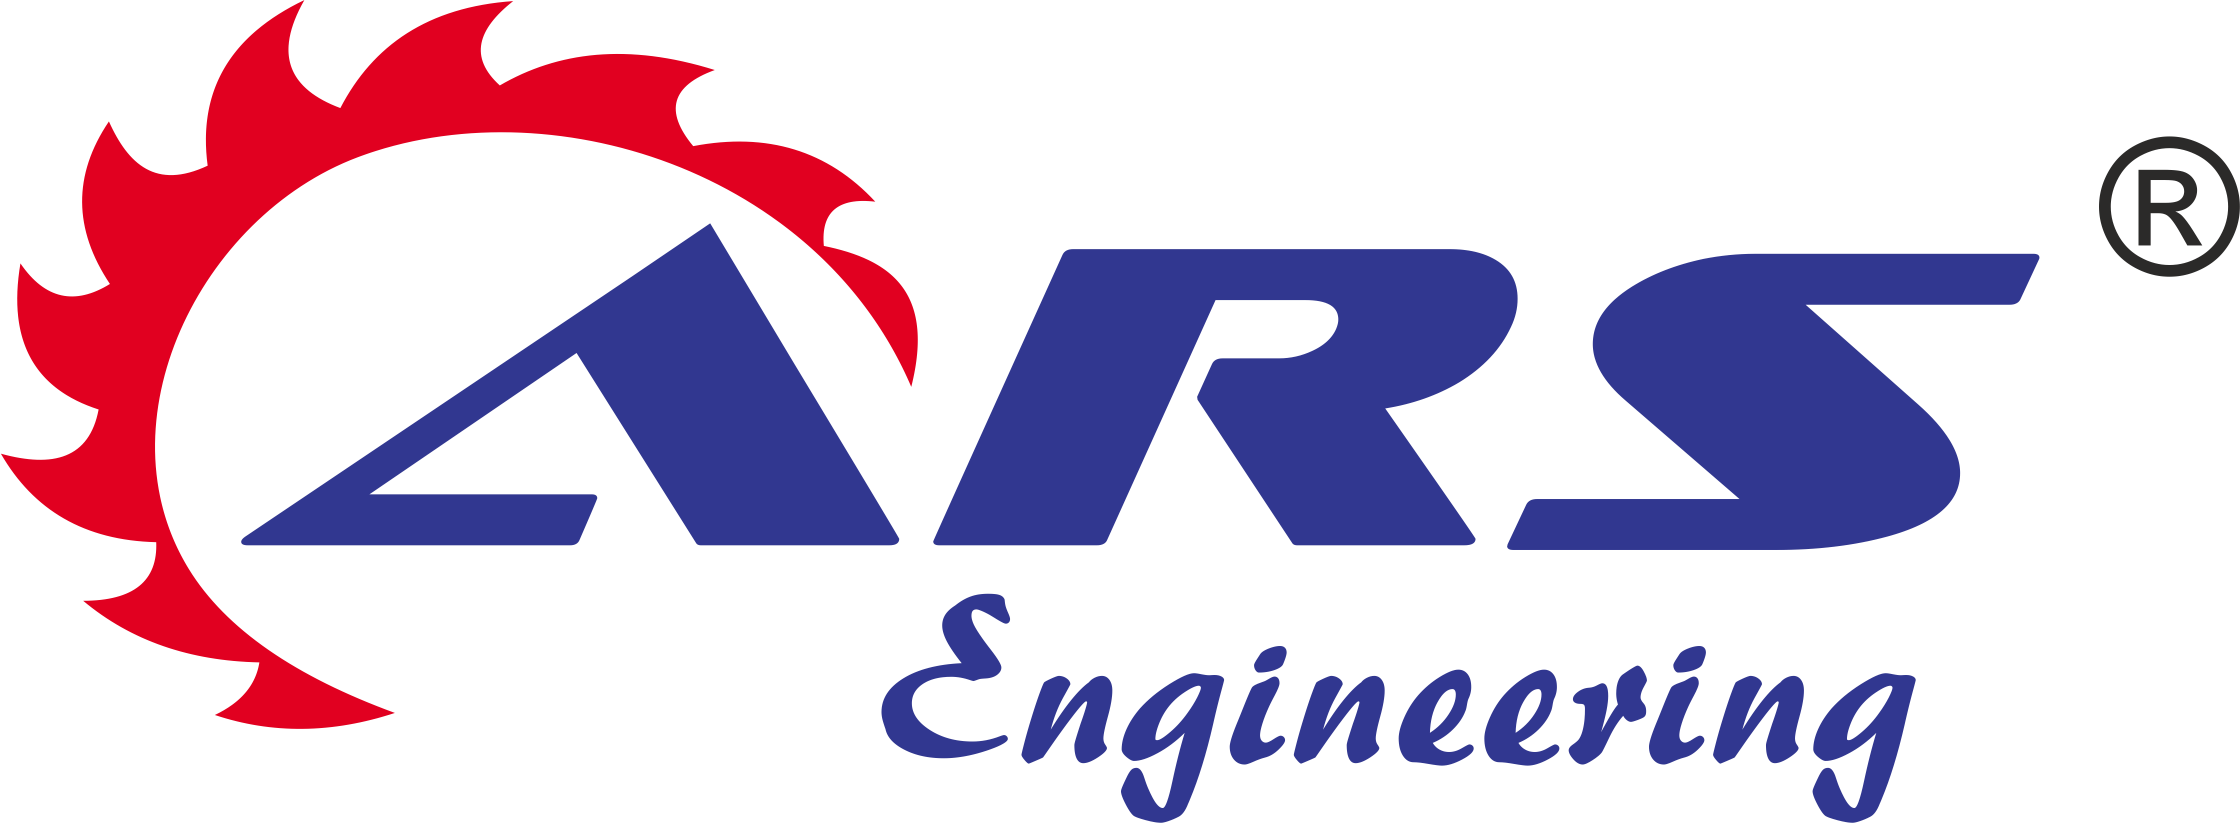 ARS Engineering logo